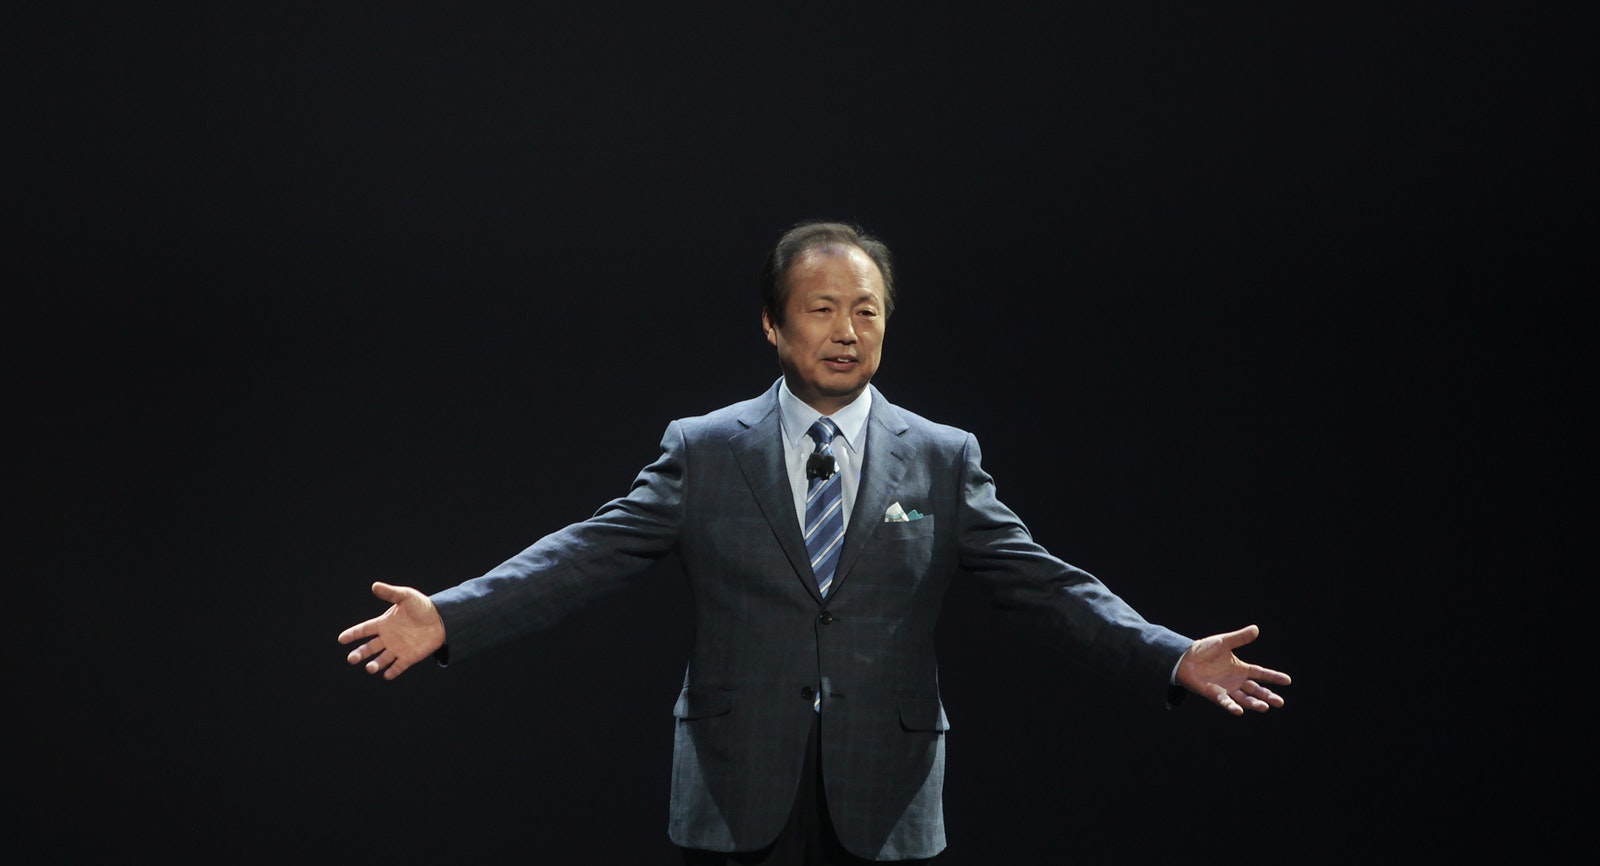 Samsung's mobile CEO J.K. Shin. Photo by Bloomberg.